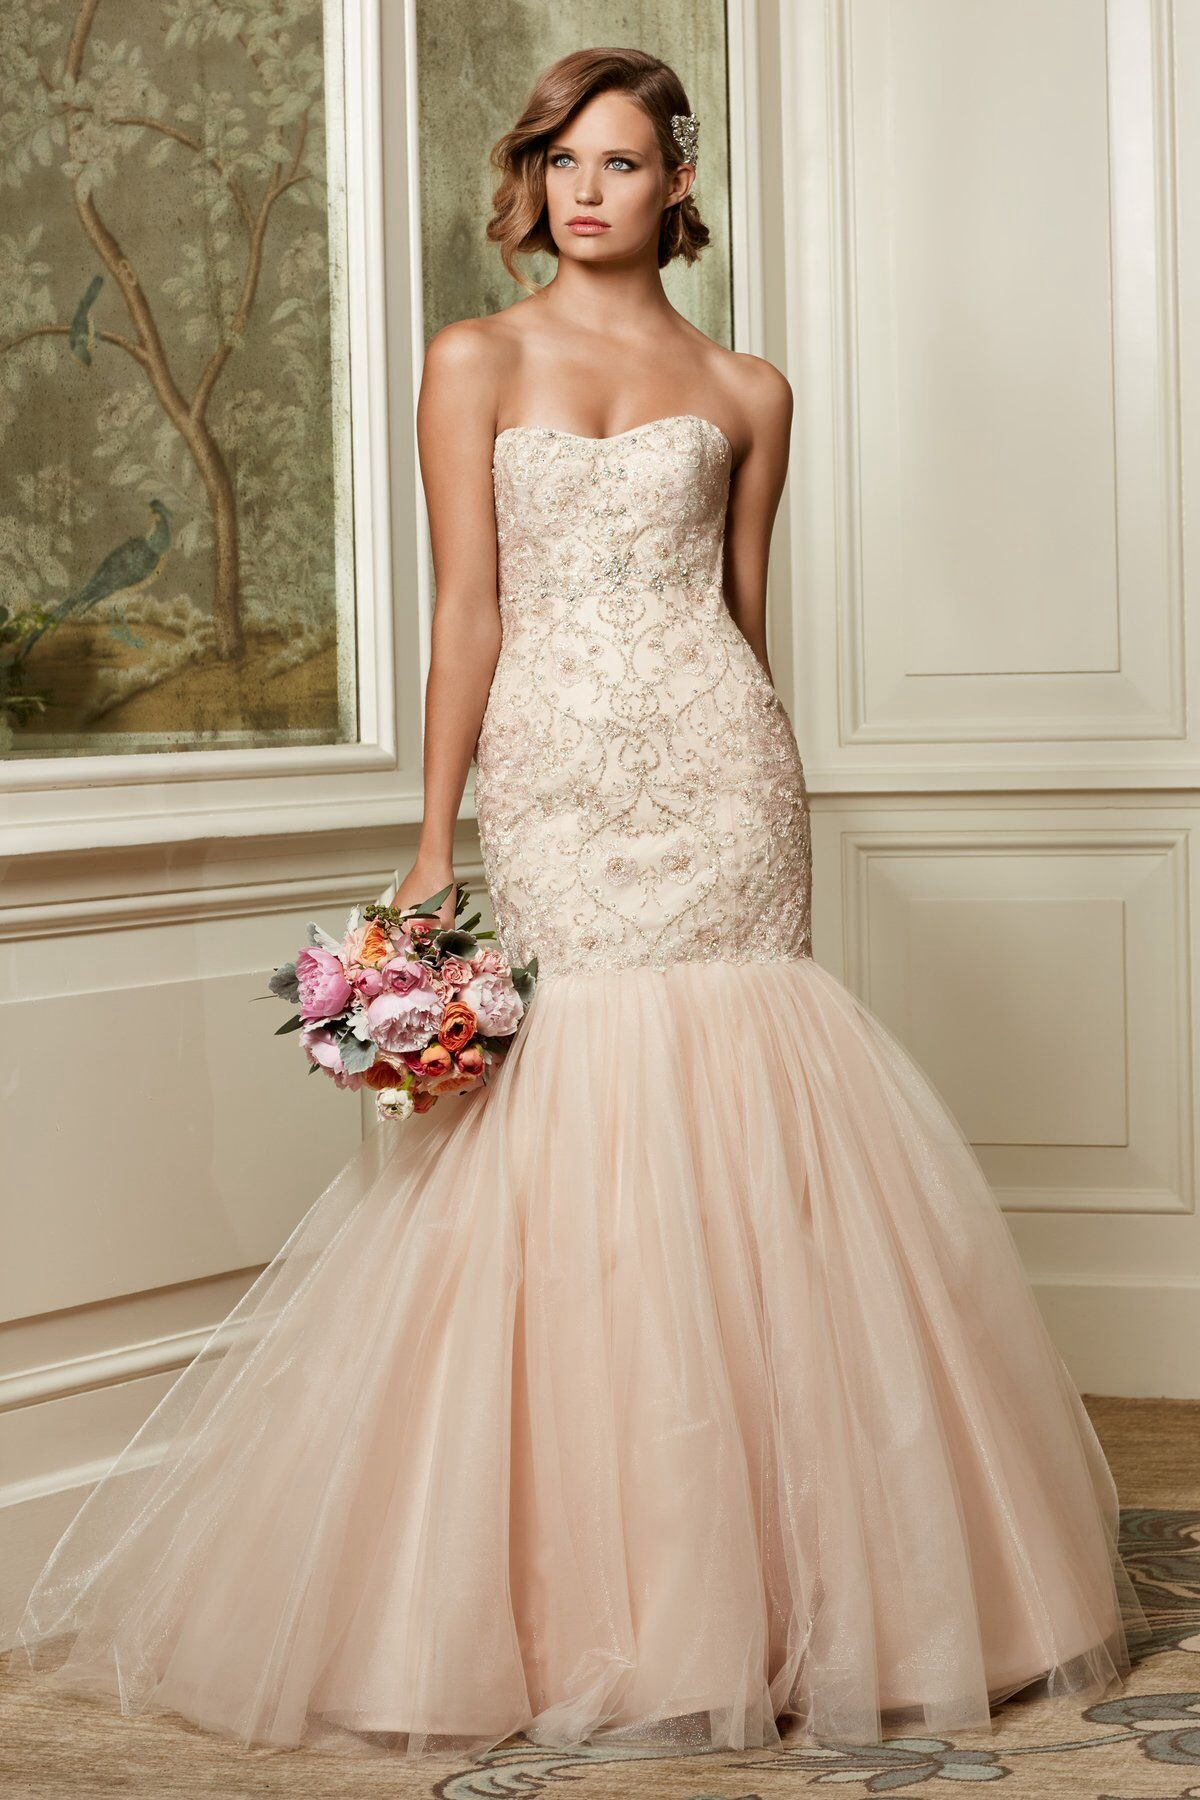 This blush Watters gown is so We love the beaded